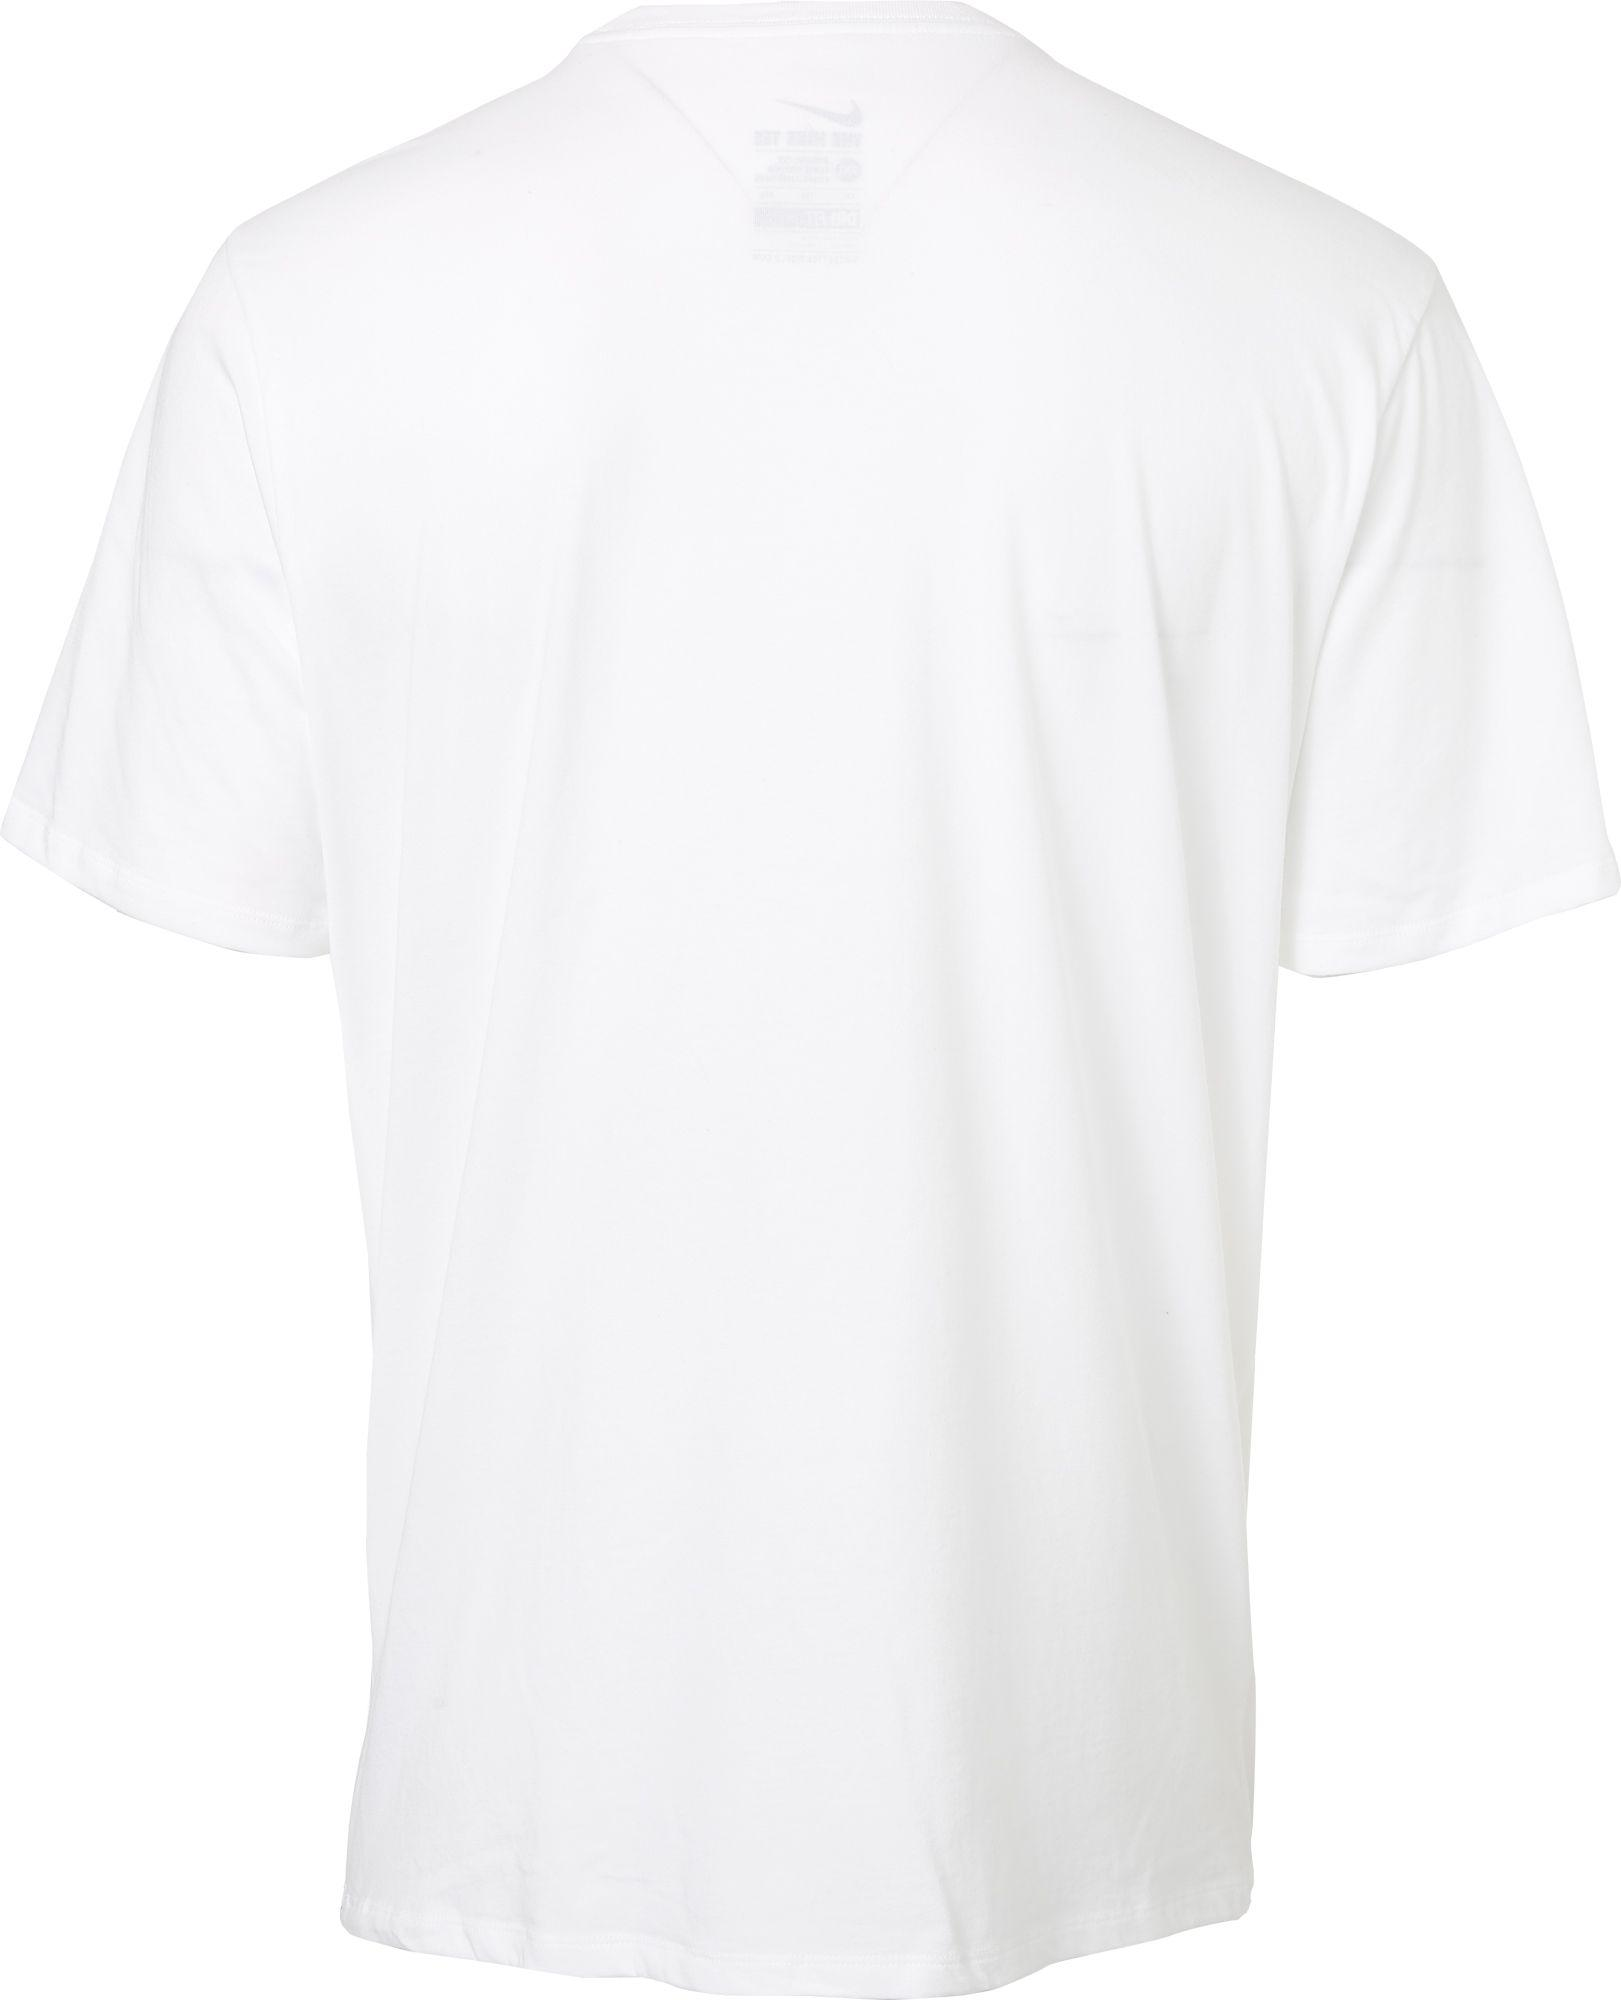 e7d64bc6f Nike Lebron Always Believe Graphic T-shirt in White for Men - Lyst